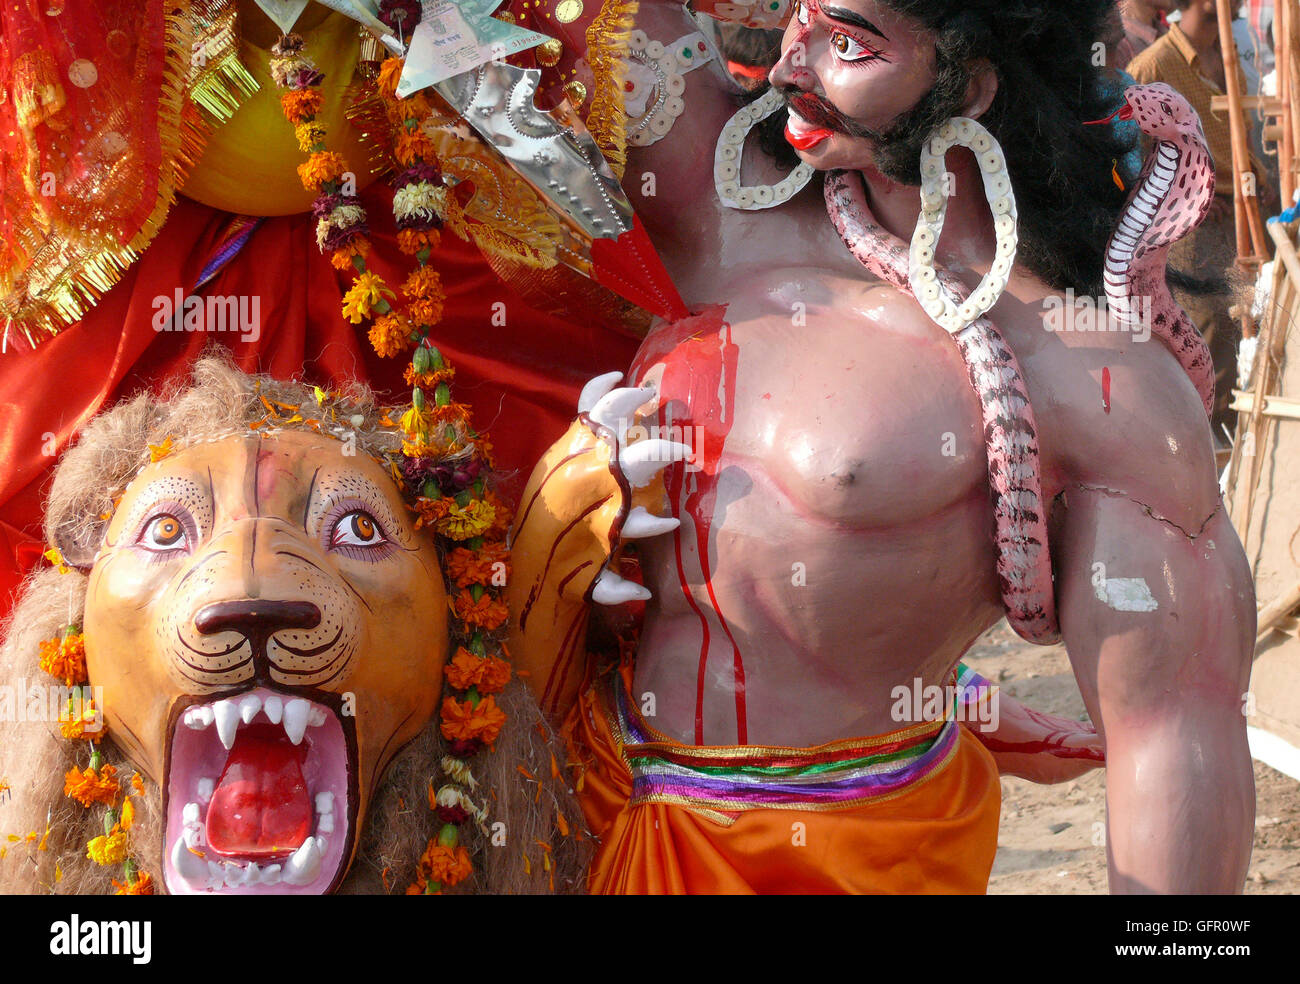 Traditionally sculptued deities from Indian mythology on the annual Dussera day. - Stock Image